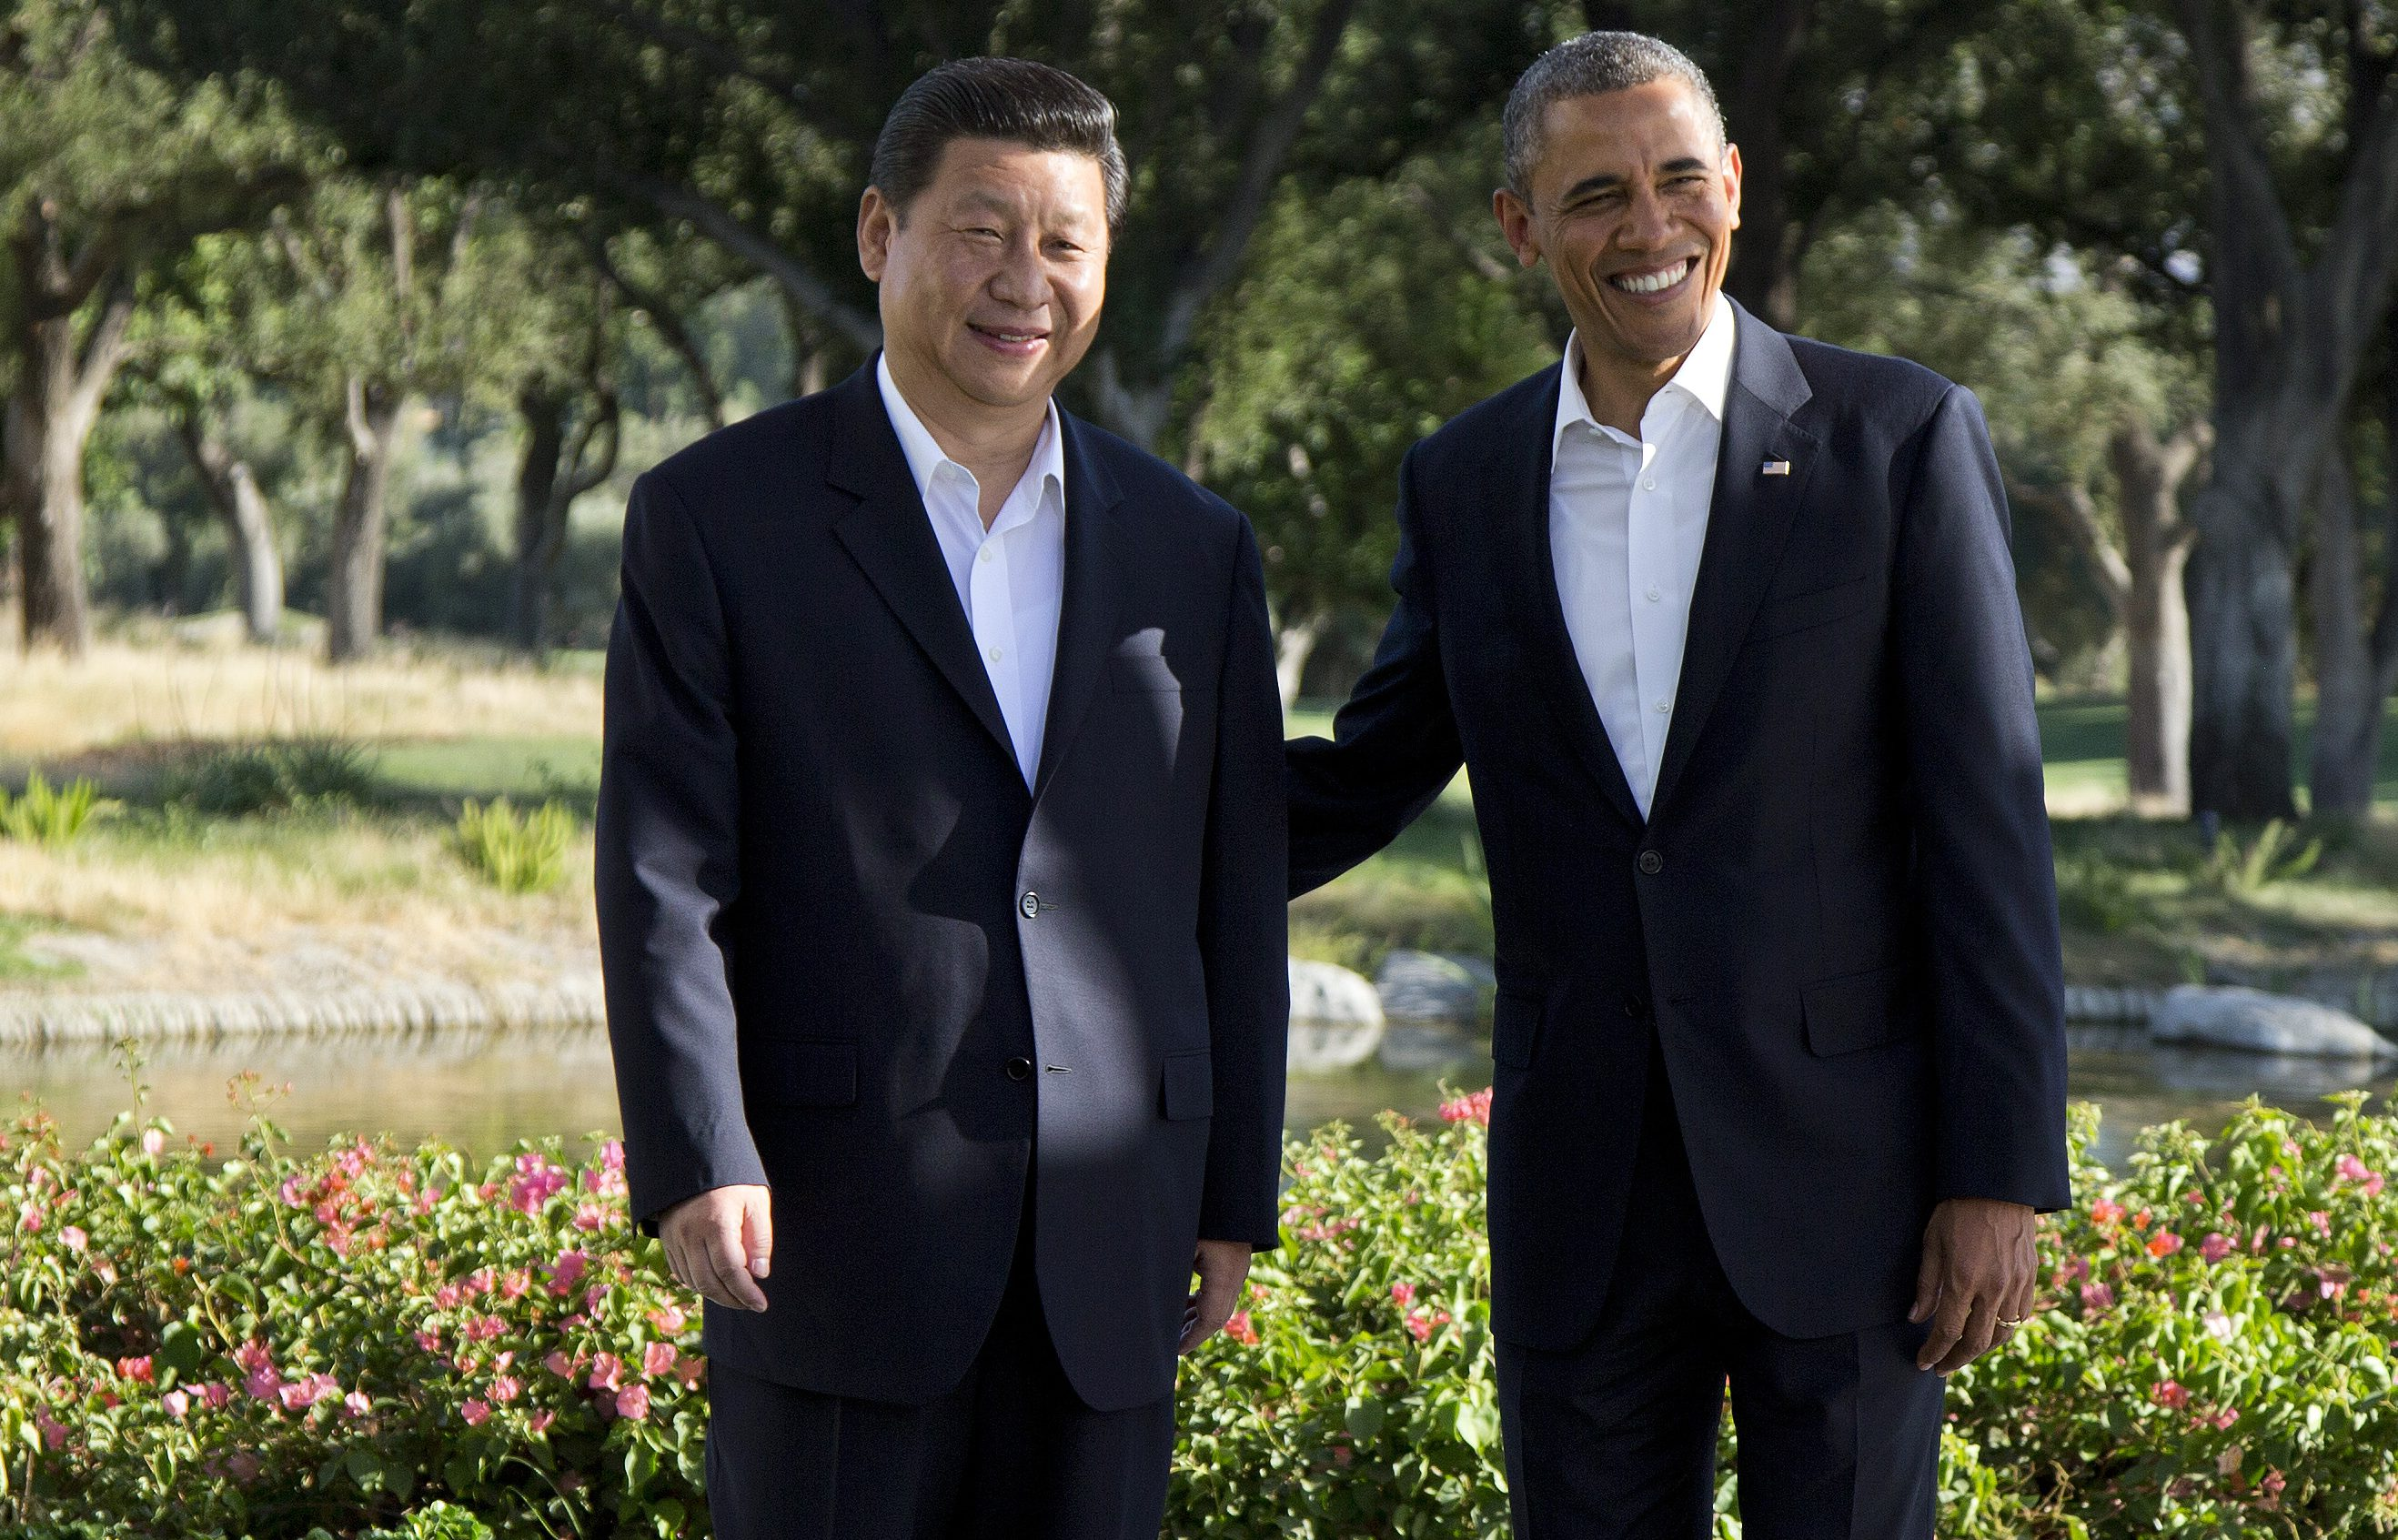 Obama and Xi Jinping share a rosy moment